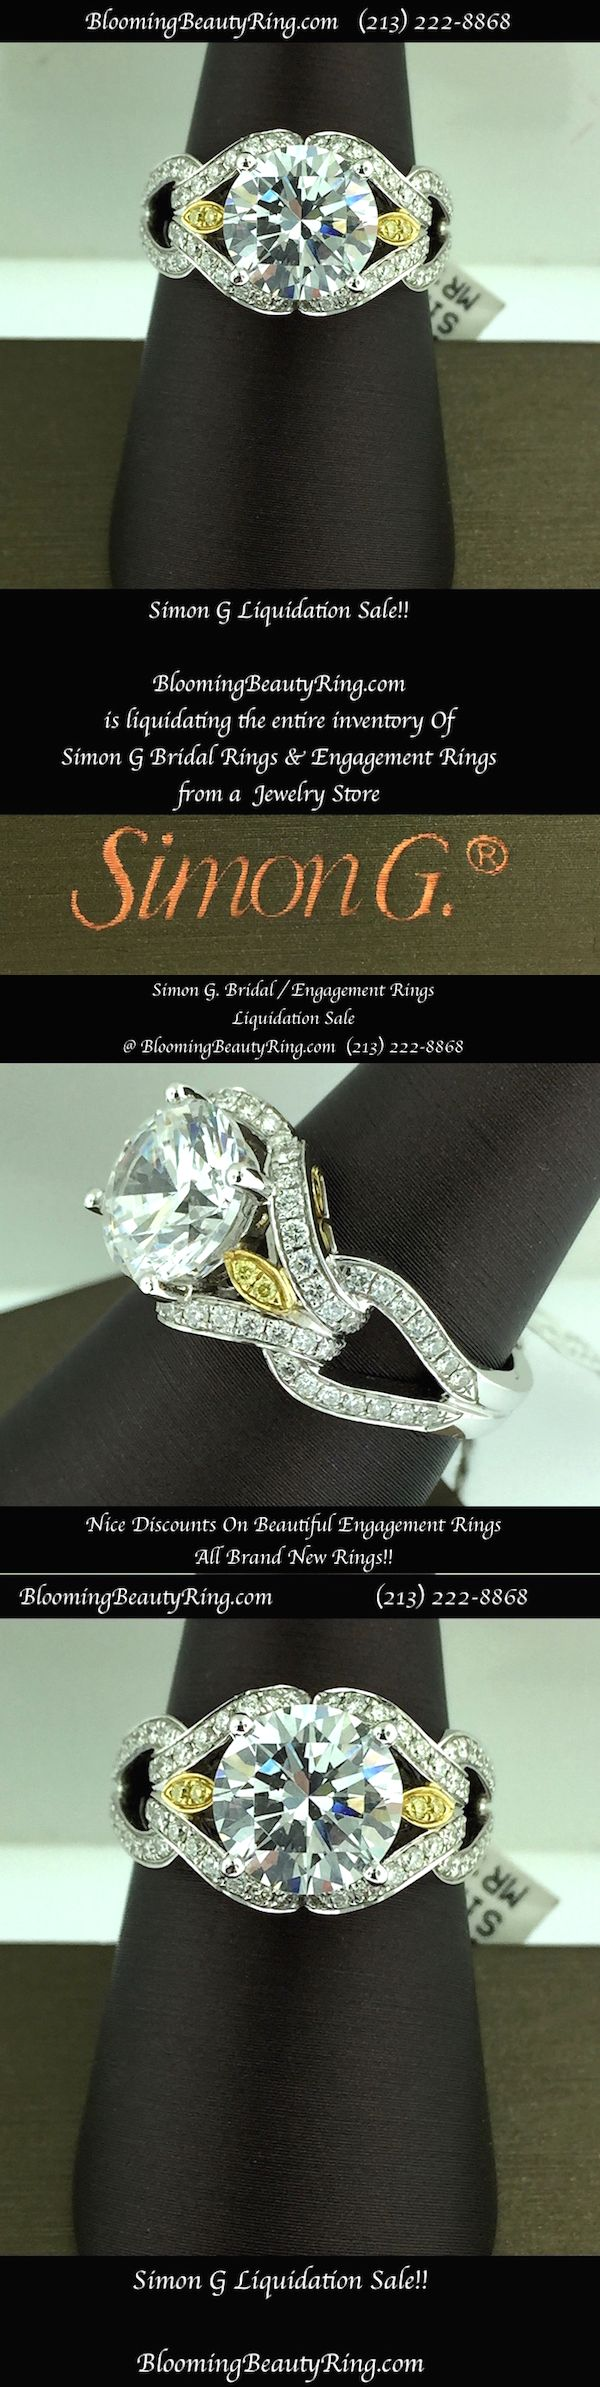 Simon G Engagement Ring Clearance Sale